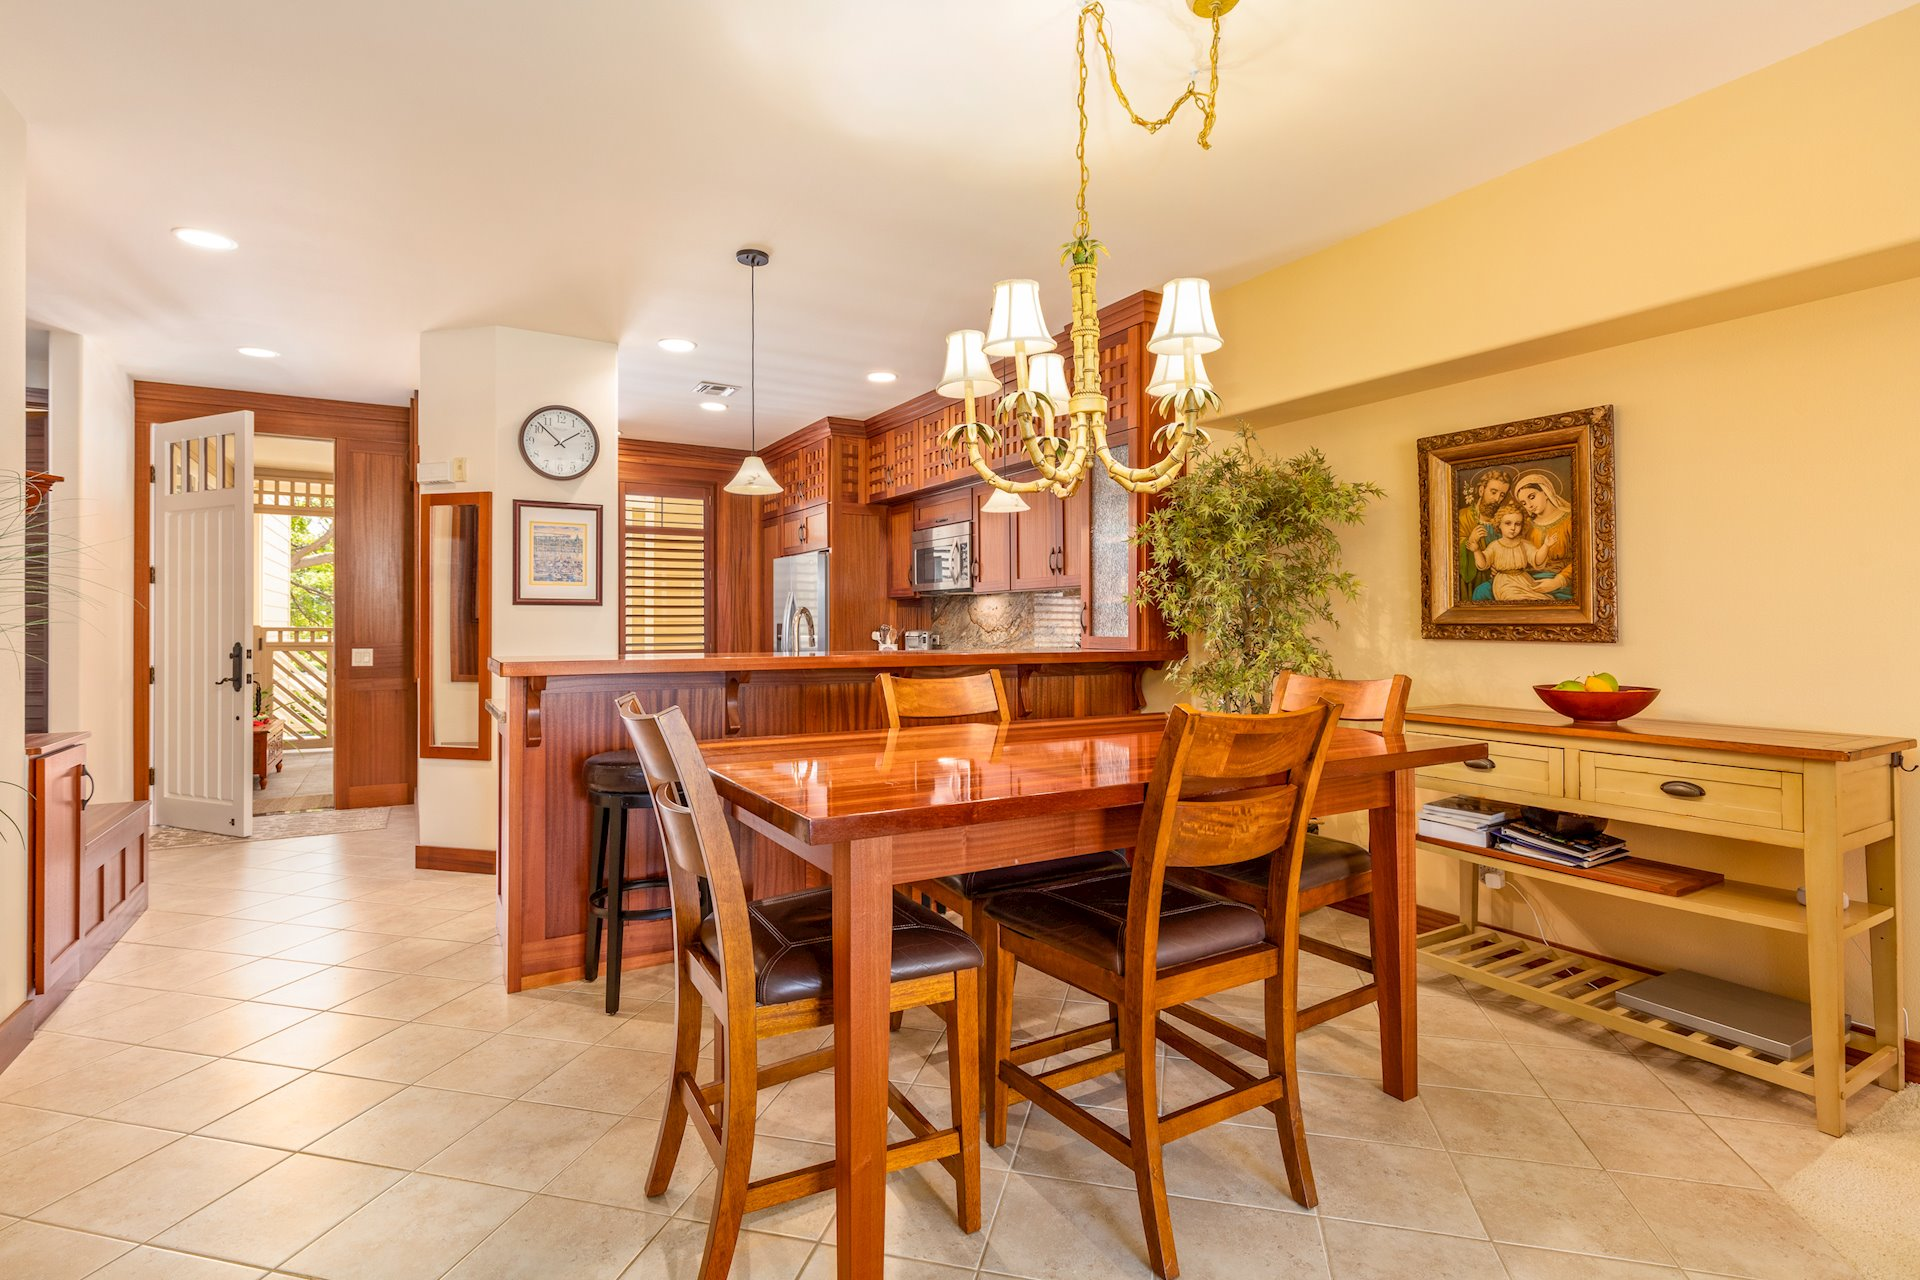 Tile floors in entry, kitchen, and dining area